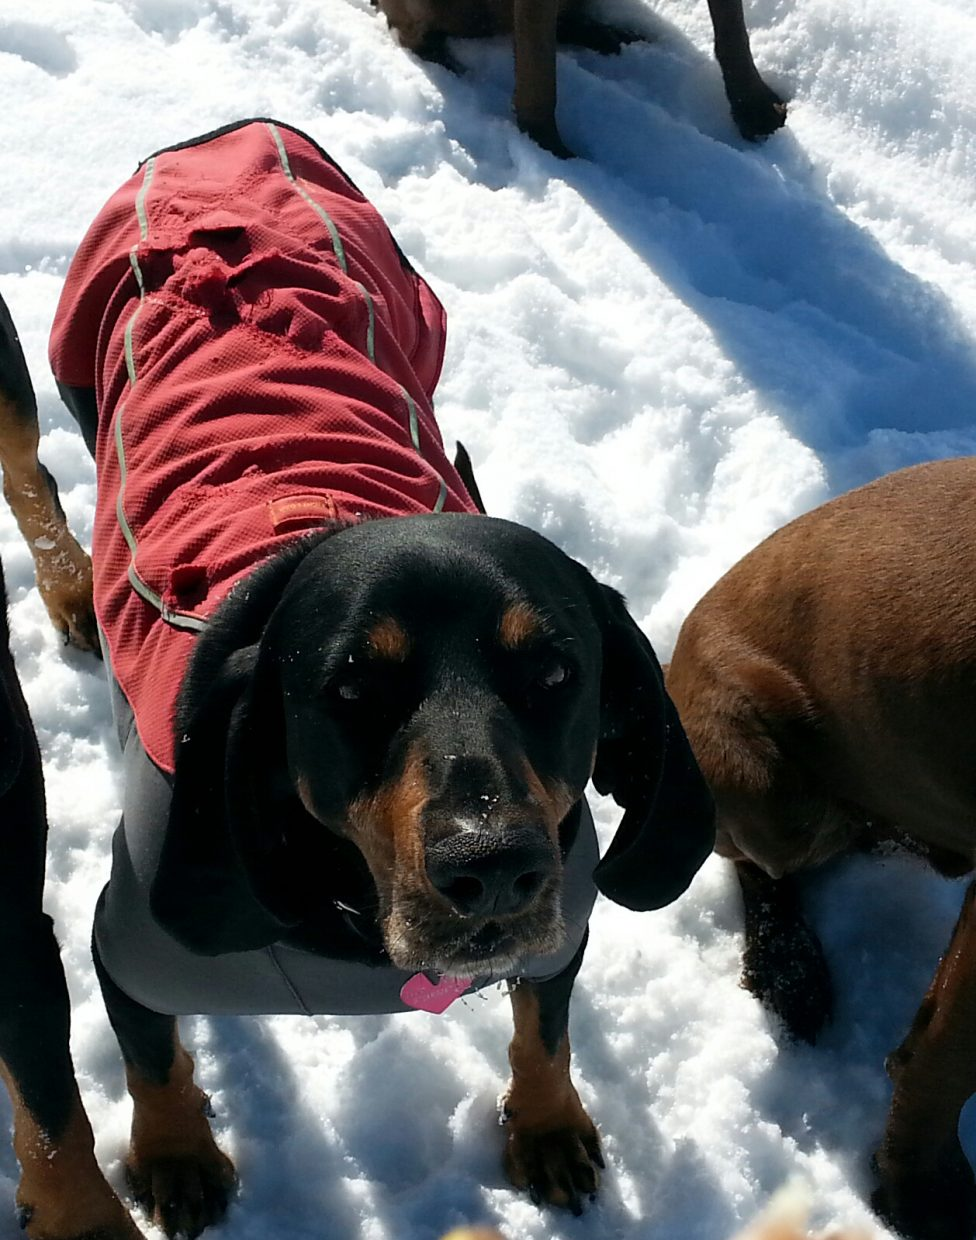 Please Please share this photo of Mini. She ran away from the fireworks on New Year's eve and hasn't been seen since. It was the coldest night of the year and we are so worried about her. She is a black and tan coonhound wearing a red and gray jacket. She is a skiddish girl but friendly. She may be hiding in someone's garage, shed or barn. Last seen running up 6th St towards the school. Please call Sarah Hoeller at 846-6625.